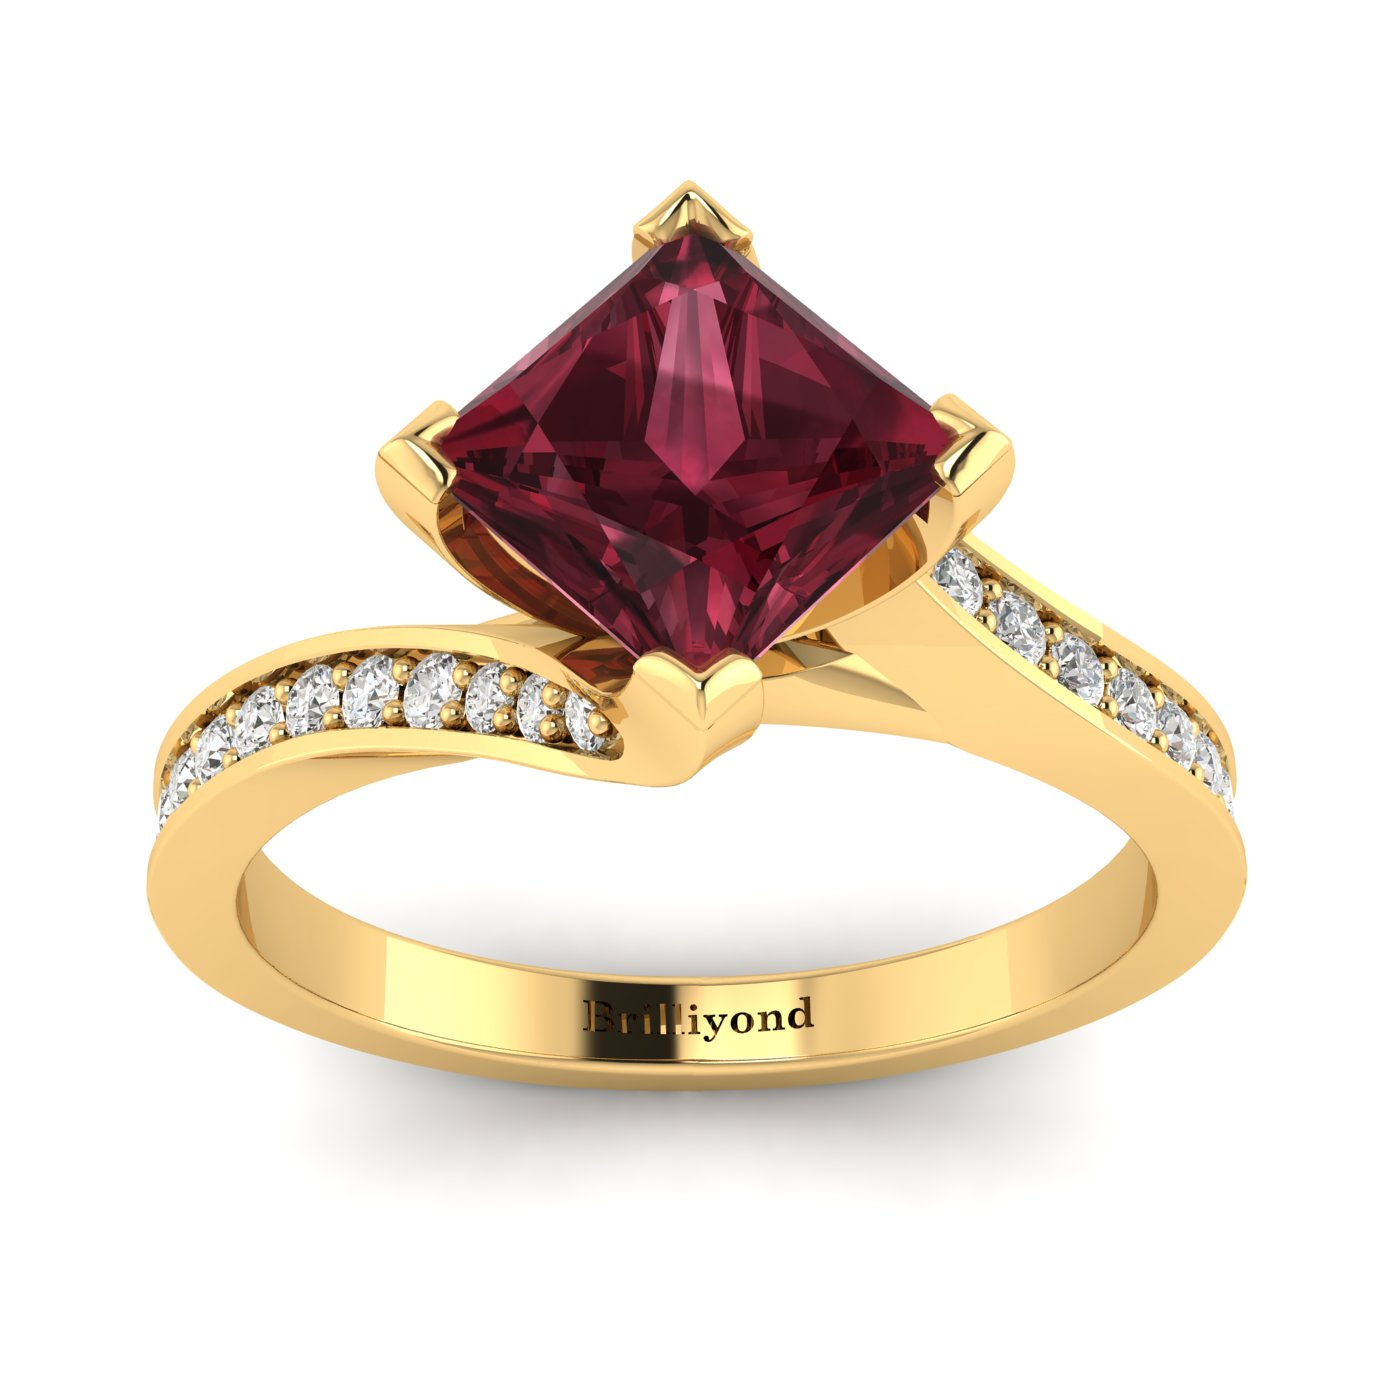 Garnet Cushion Cut Engagement Ring by Brilliyond Australia